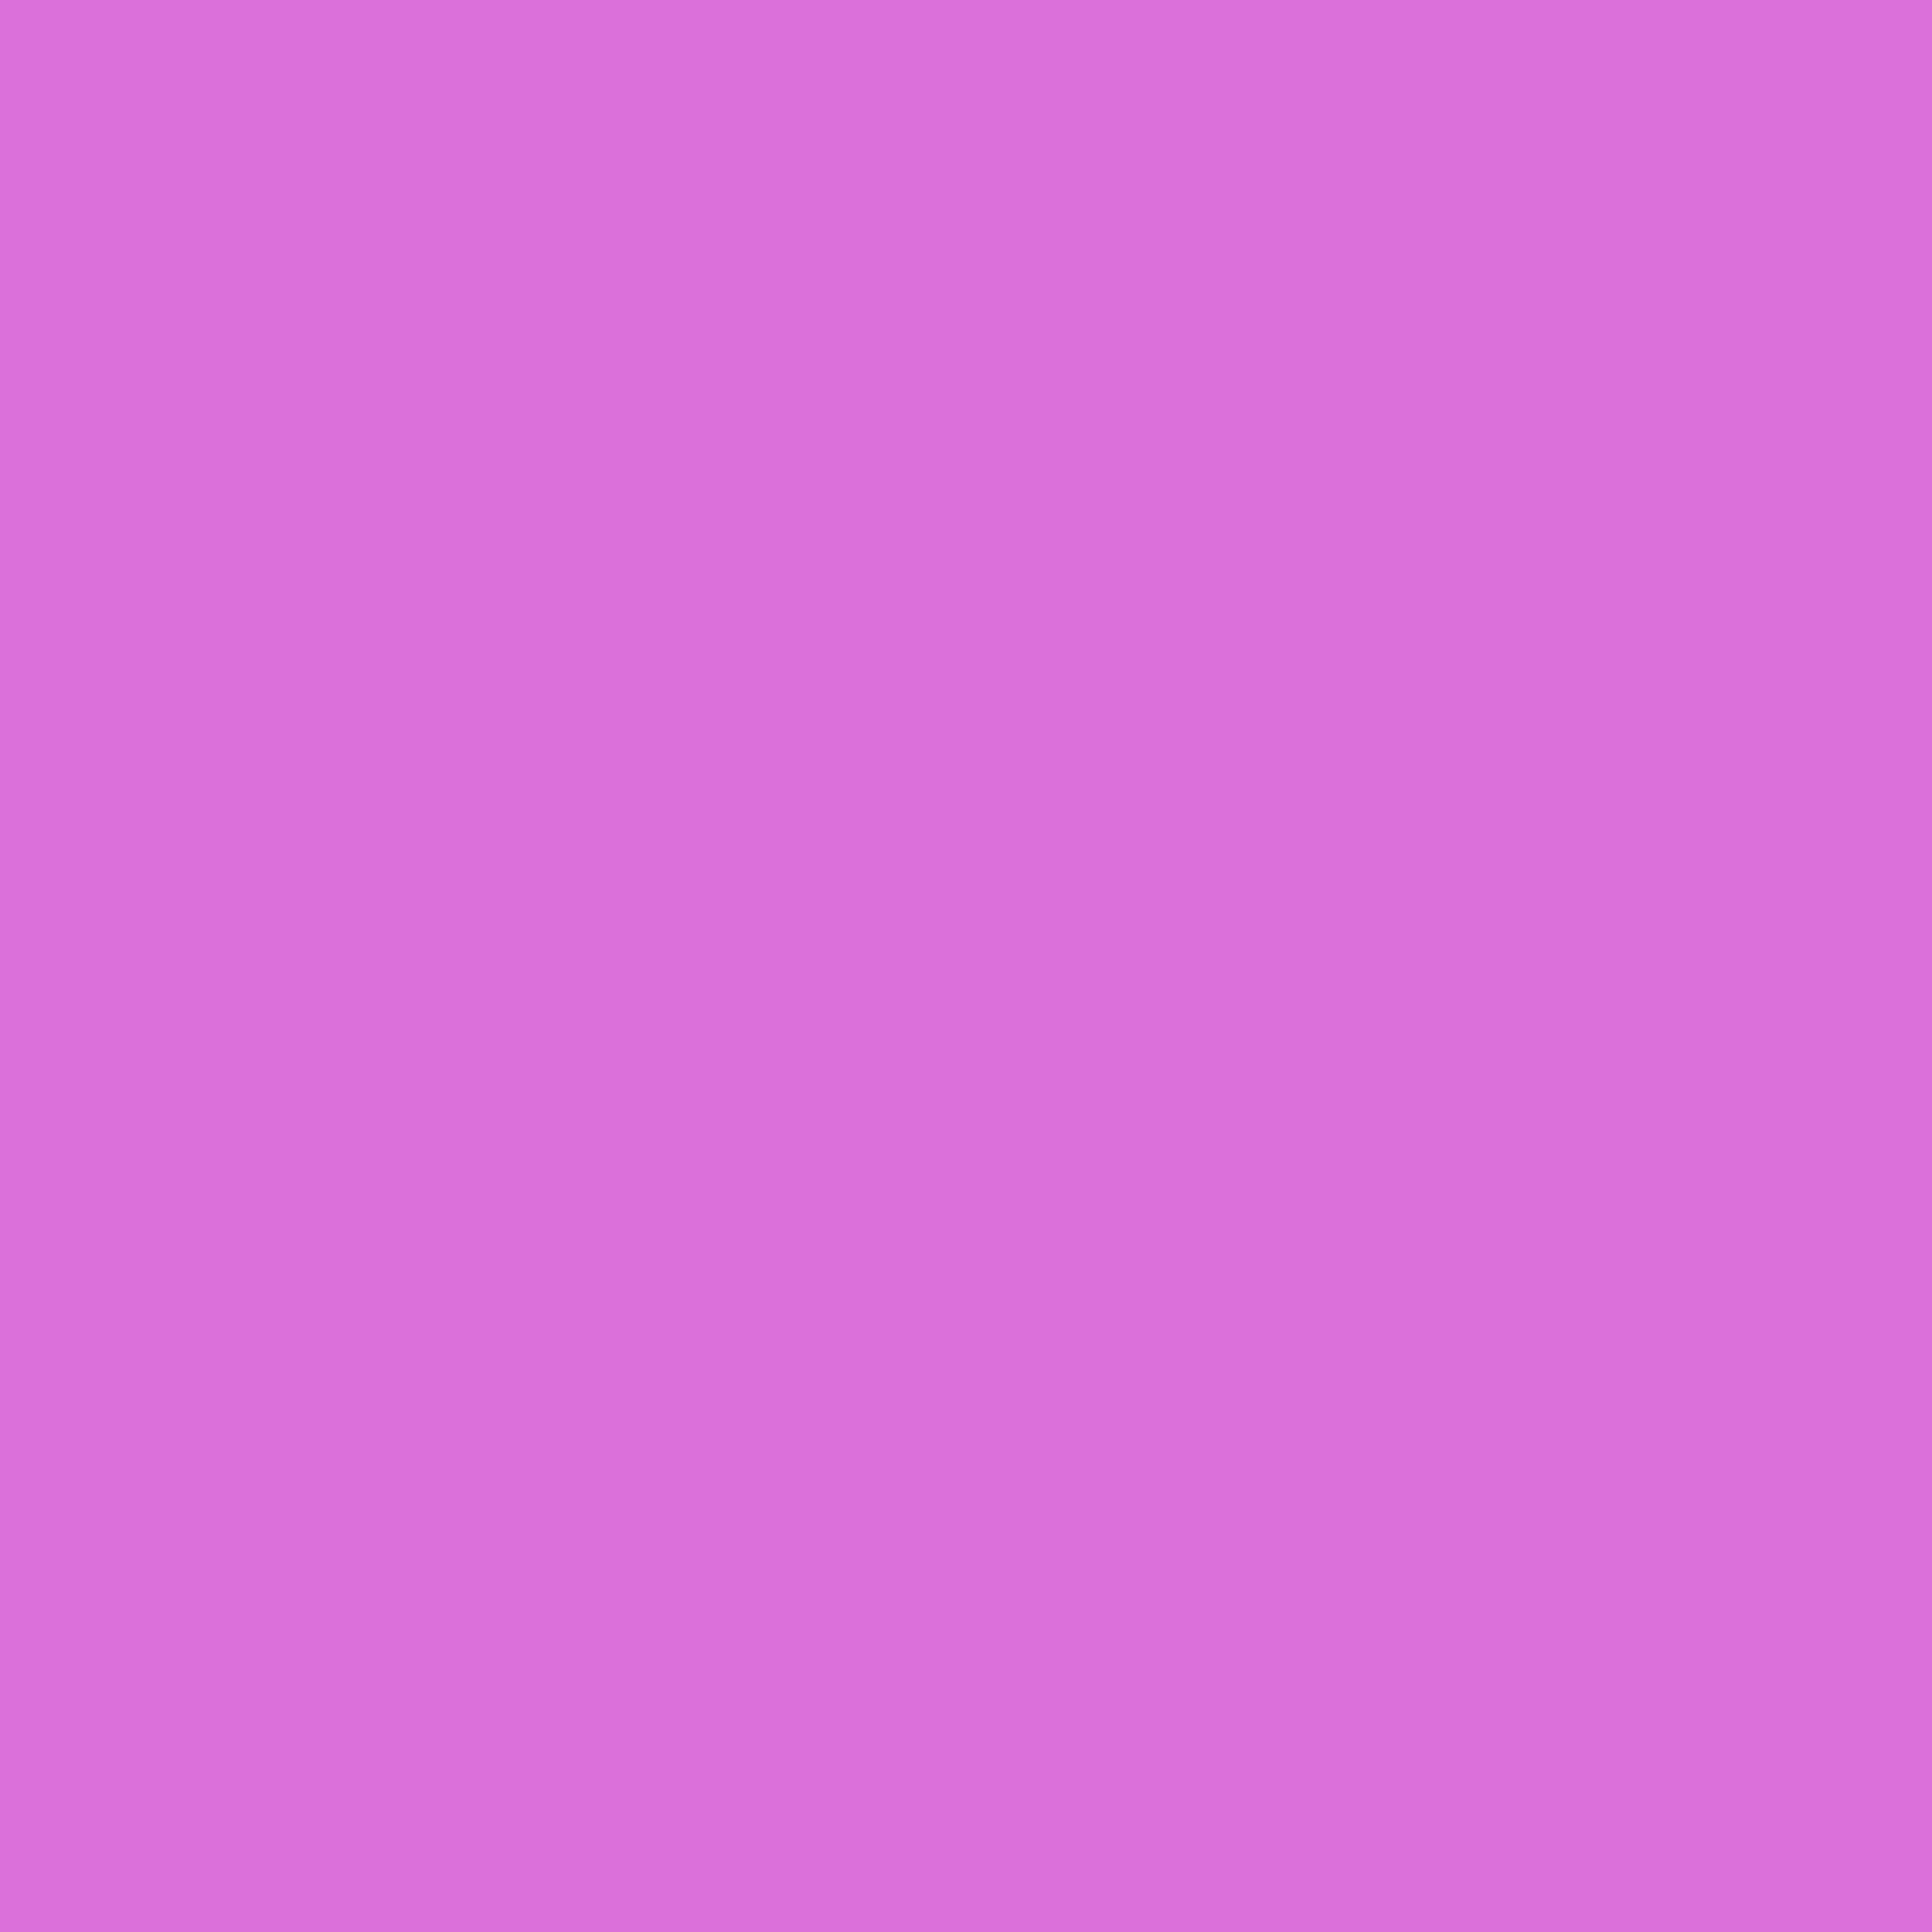 2732x2732 Orchid Solid Color Background